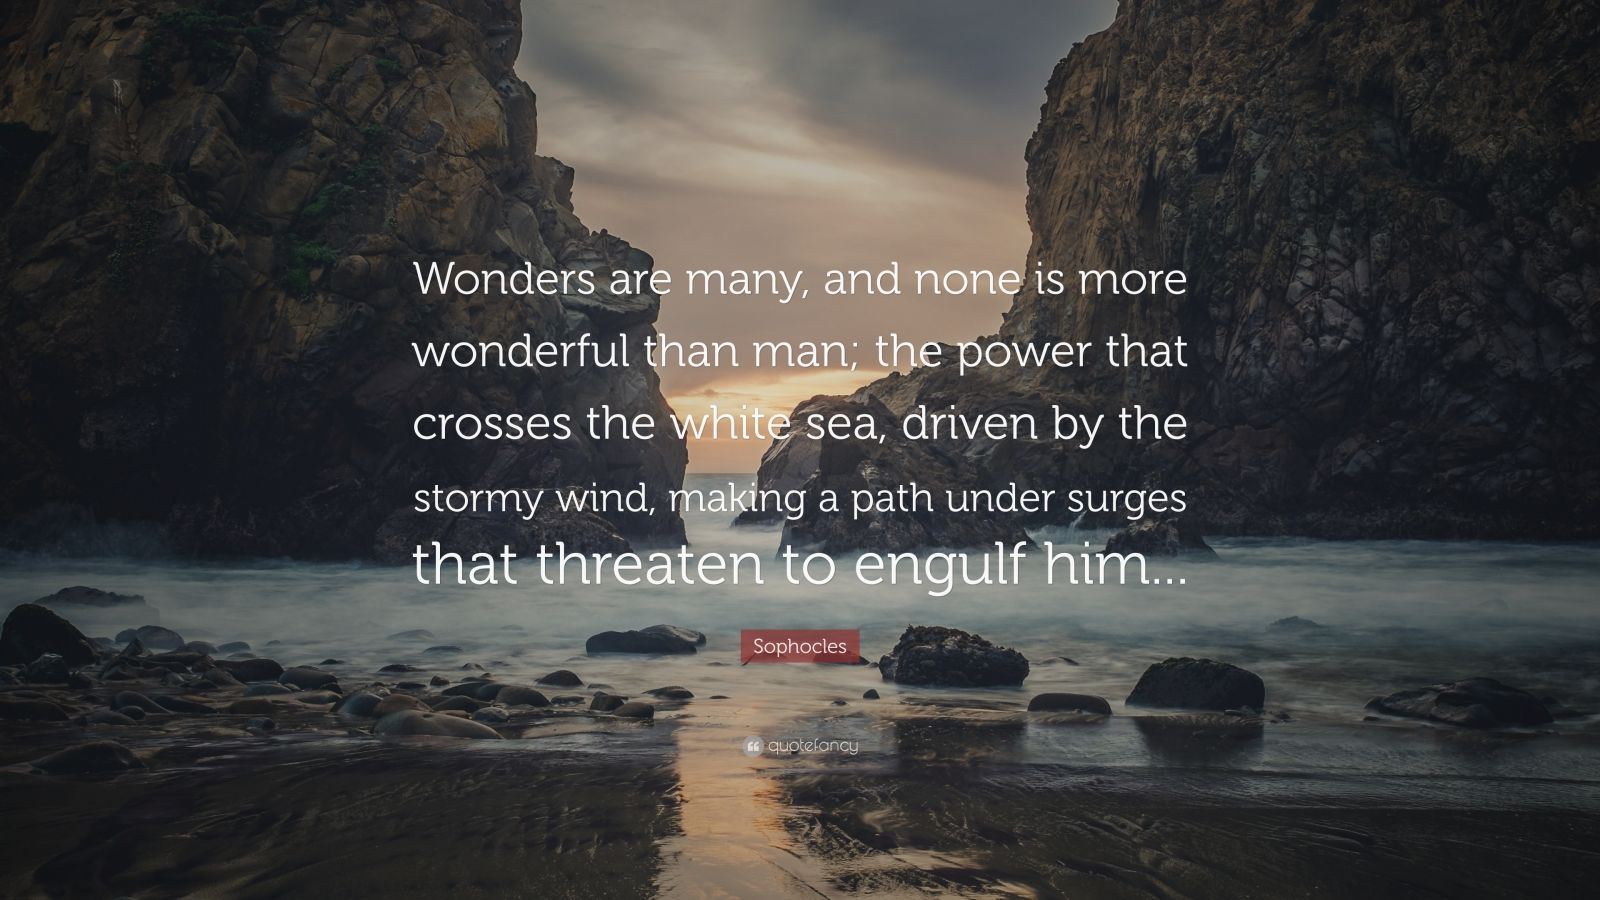 """Sophocles Quote: """"Wonders are many, and none is more wonderful than man; the power that crosses the white sea, driven by the stormy wind, making a path under surges that threaten to engulf him..."""""""